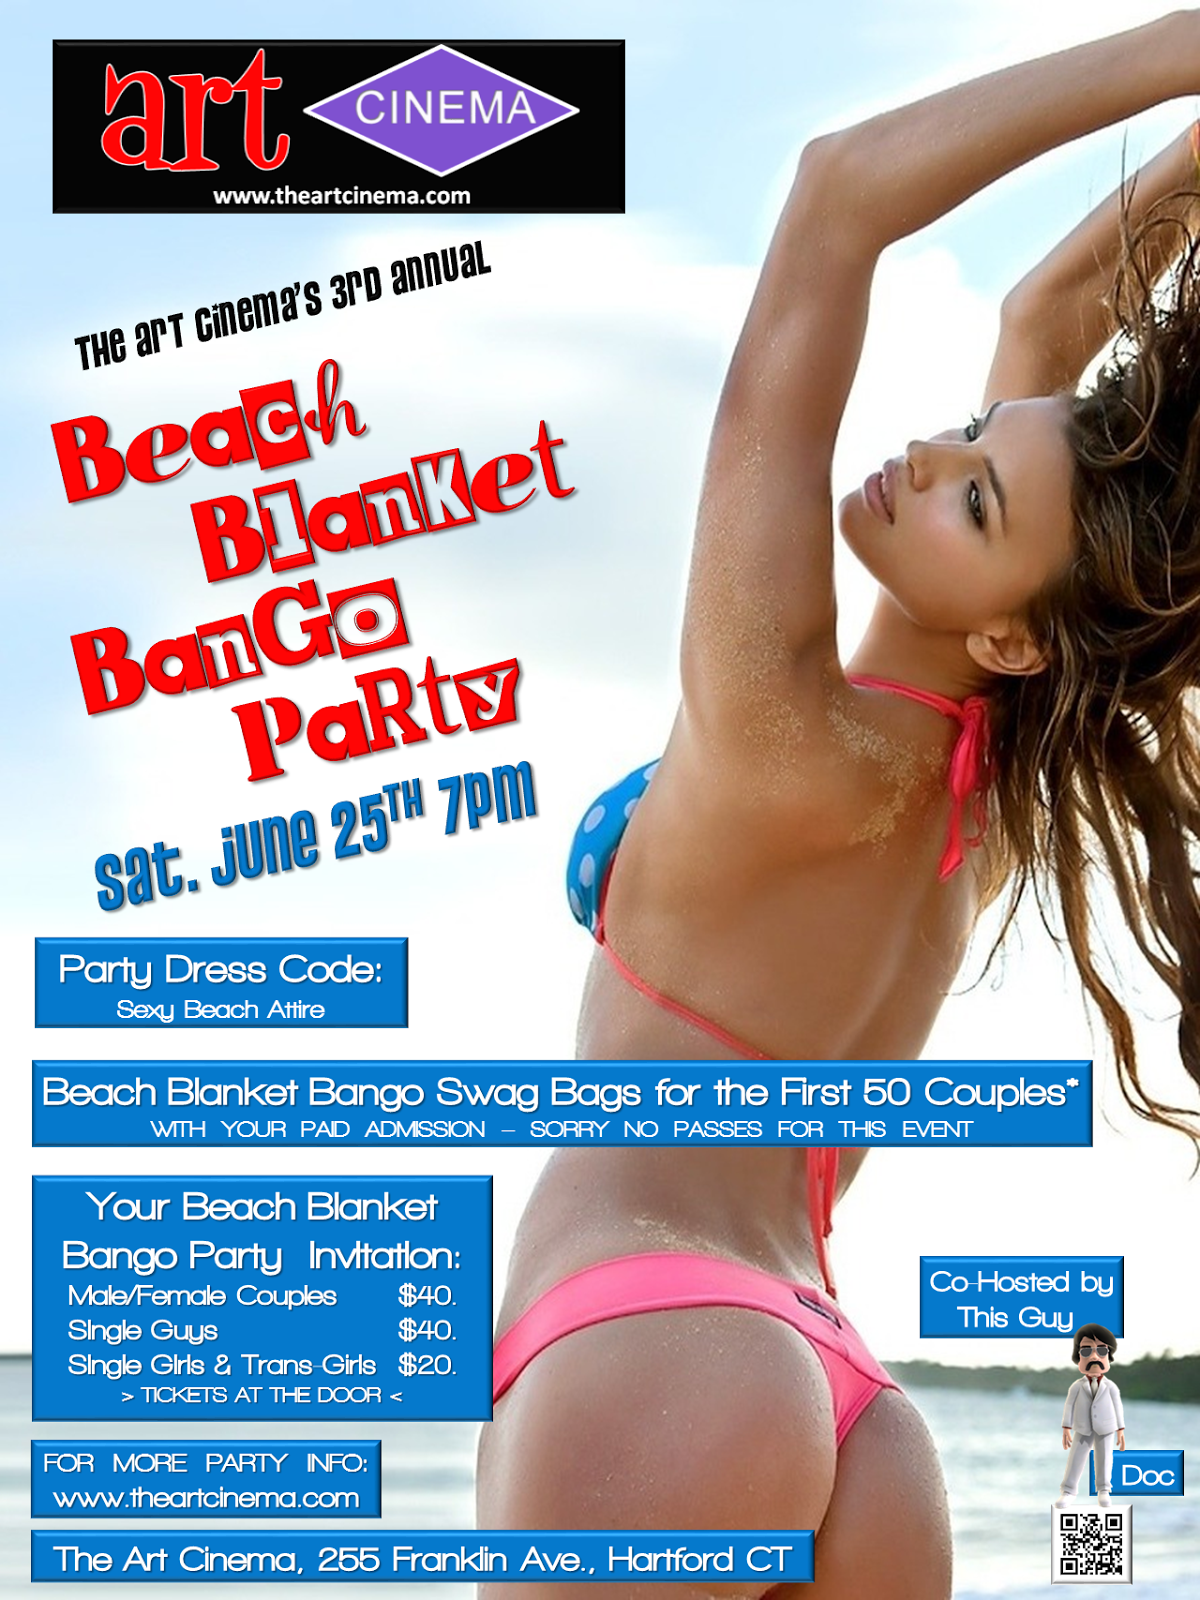 The Next Art Cinema Event! Beach Blanket Bango!